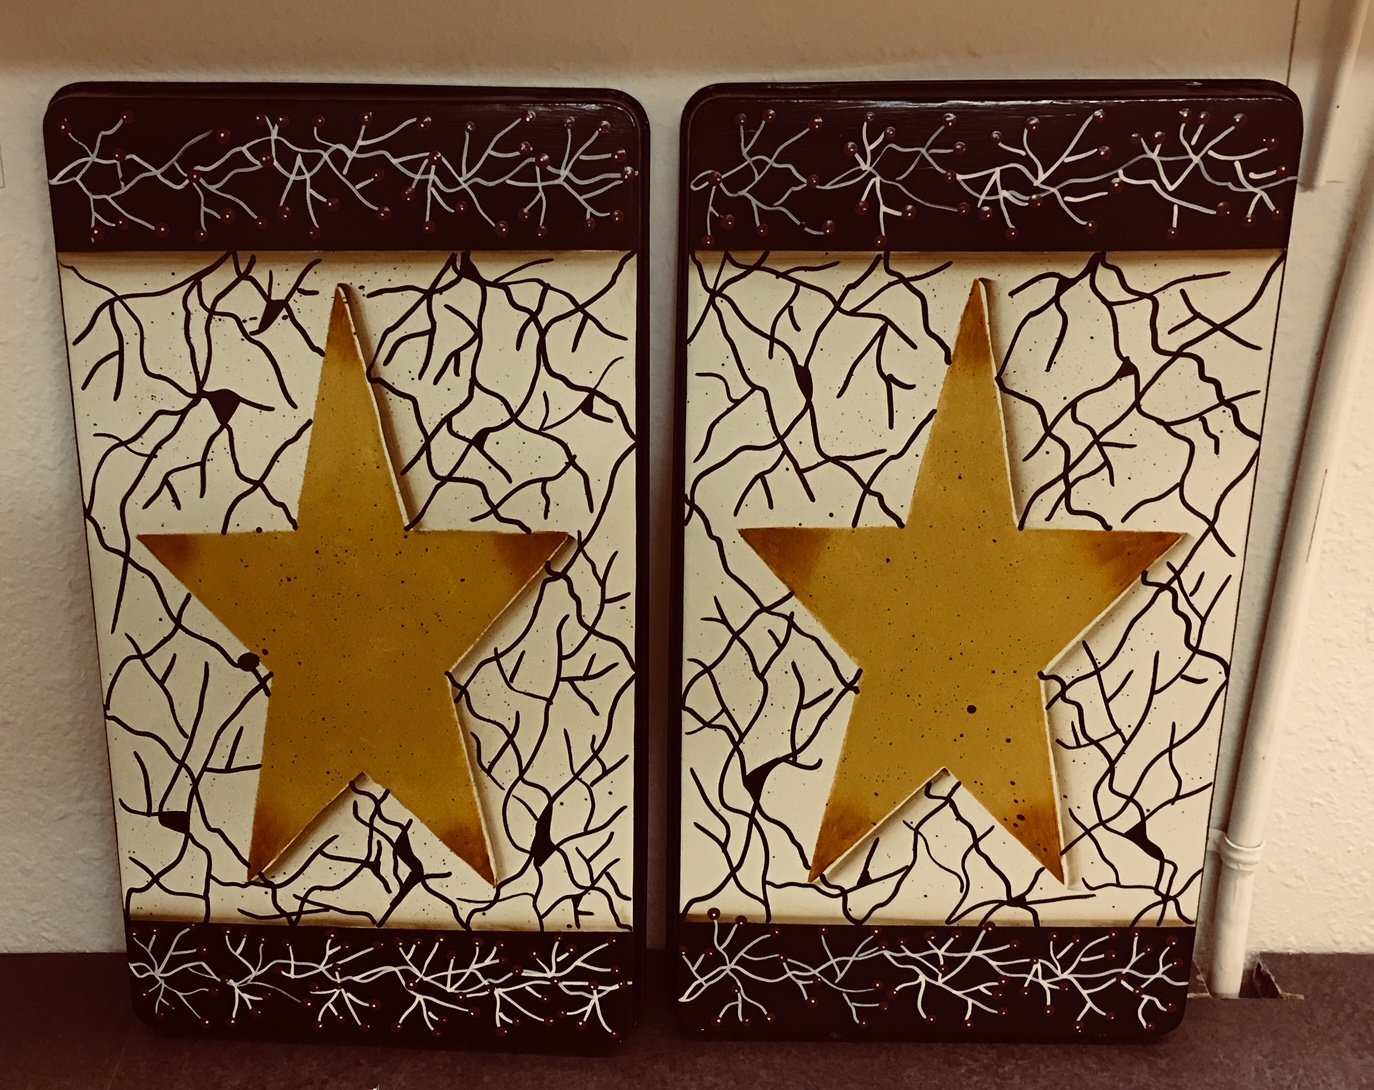 Farmhouse Style Crackled Stove Burner Covers Set by Primitive Country Loft House